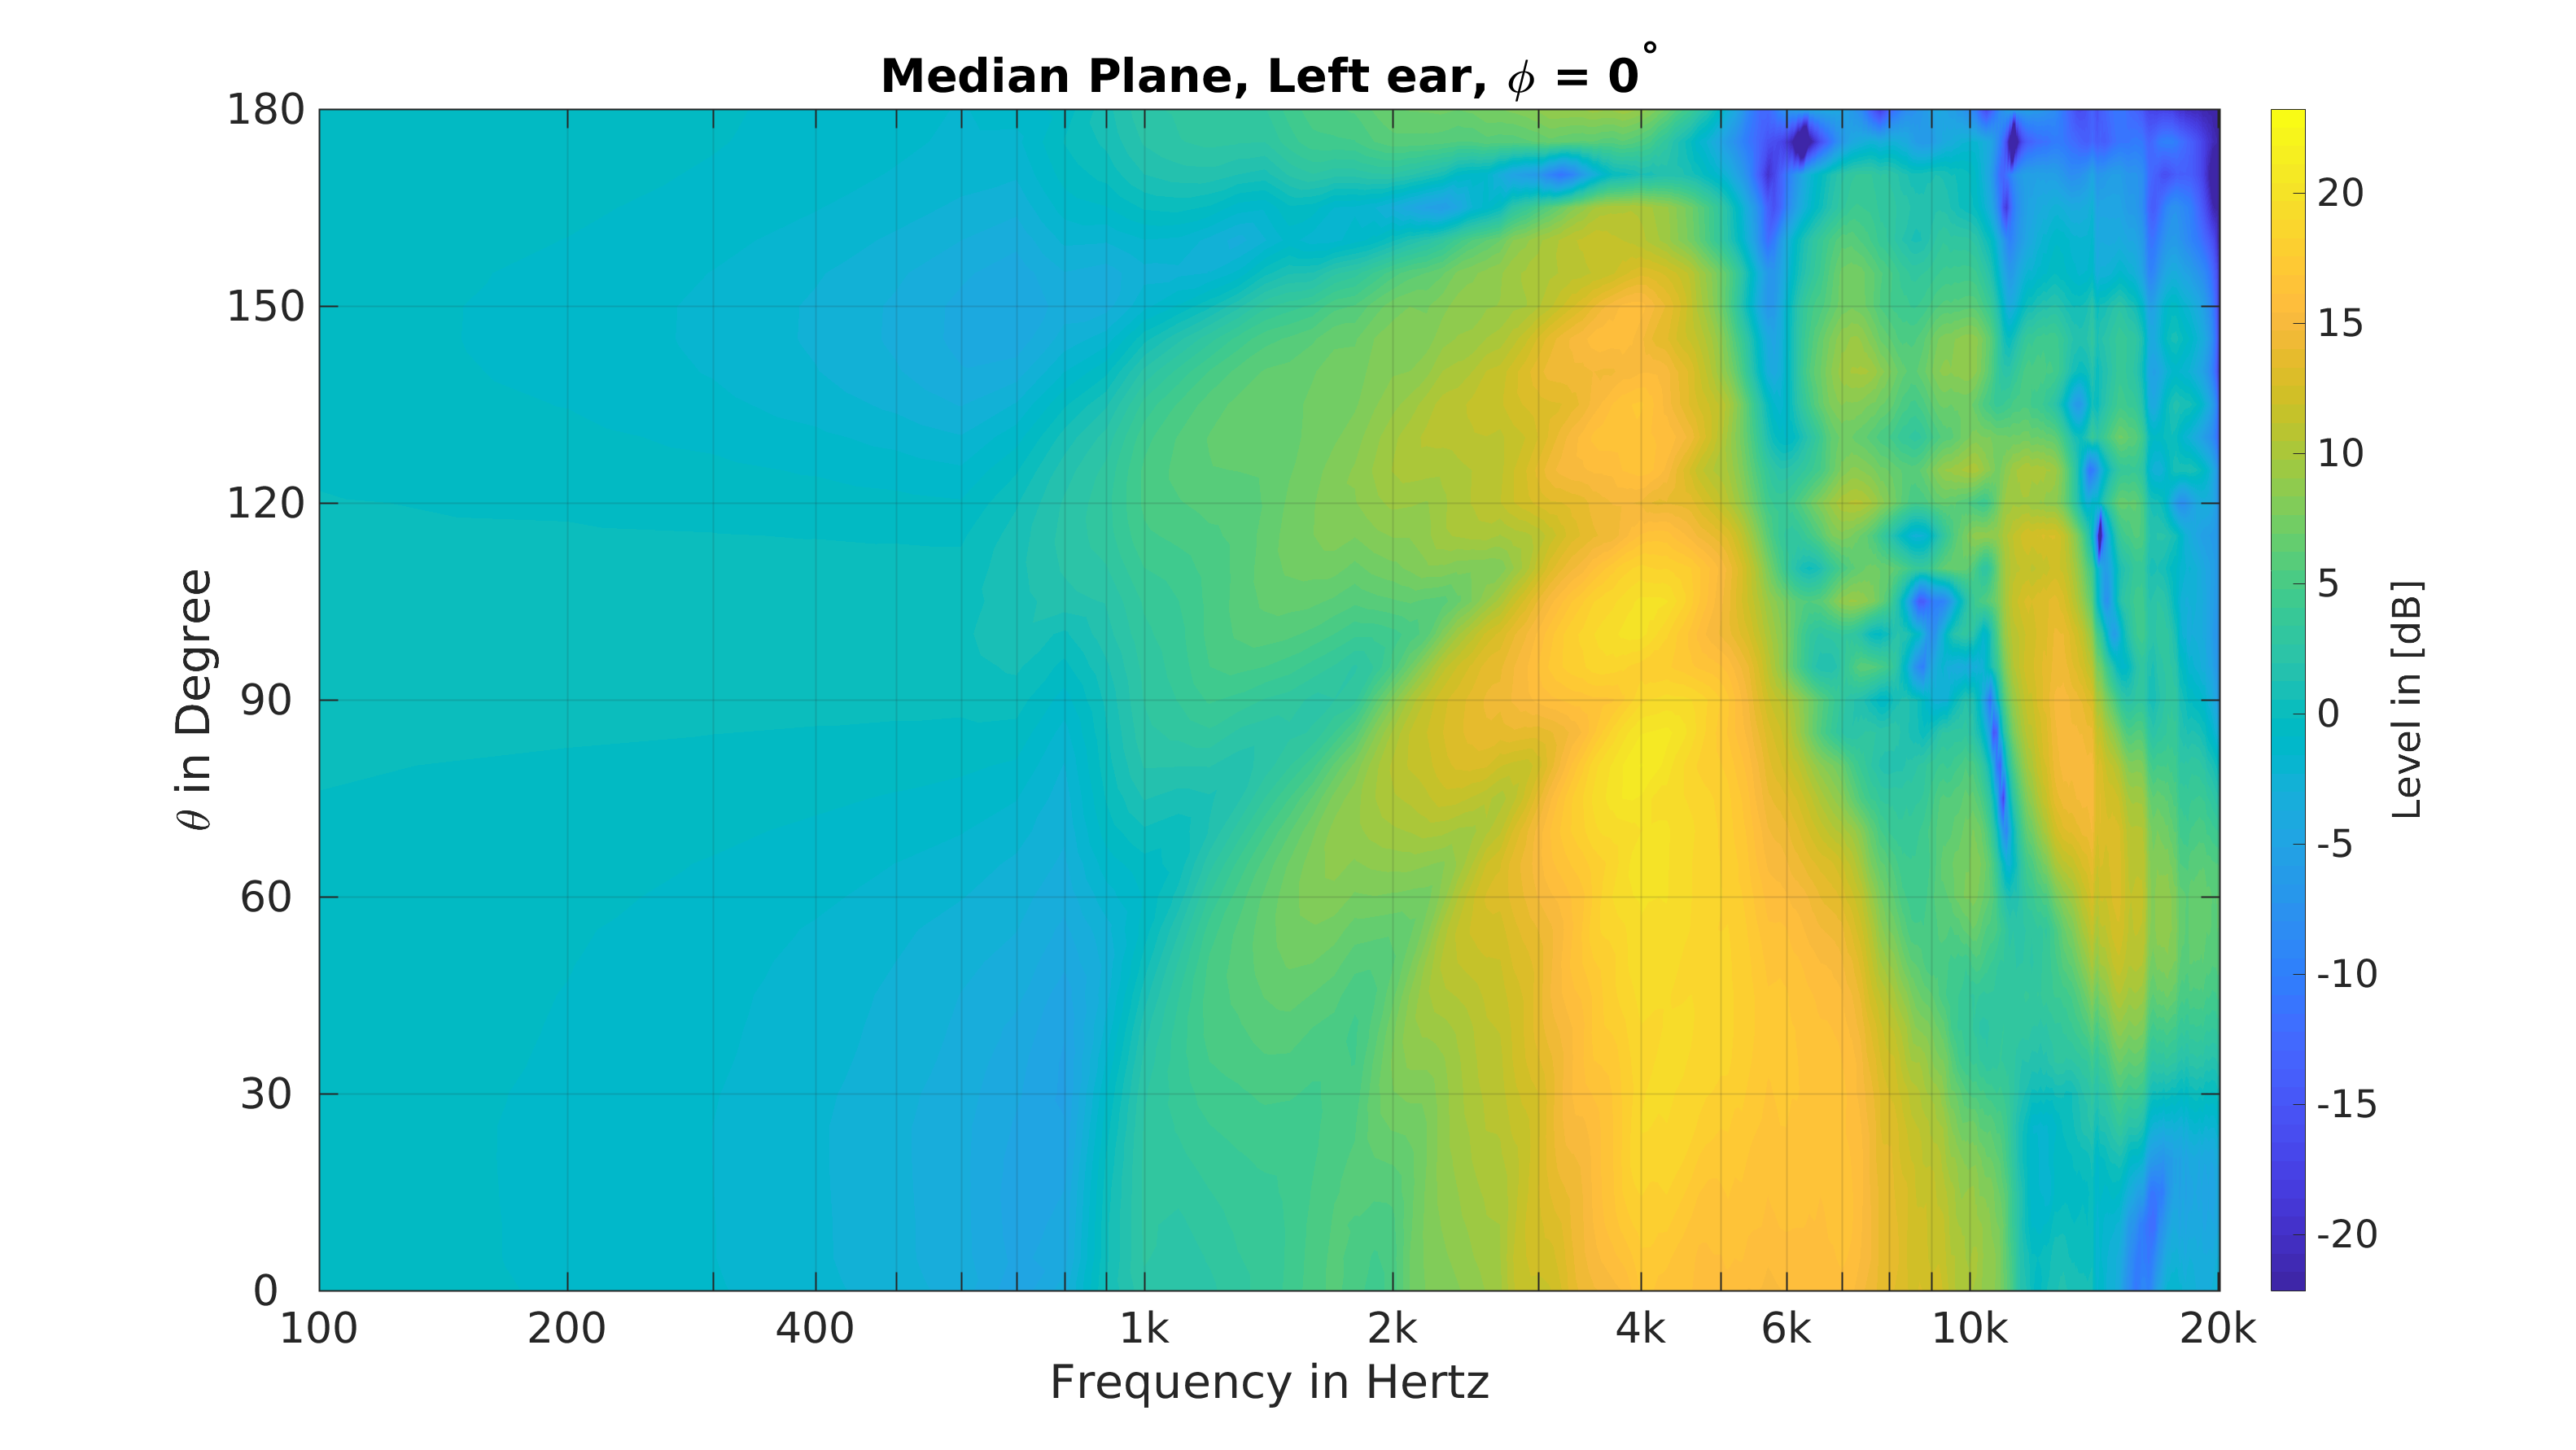 median plane frequence slice